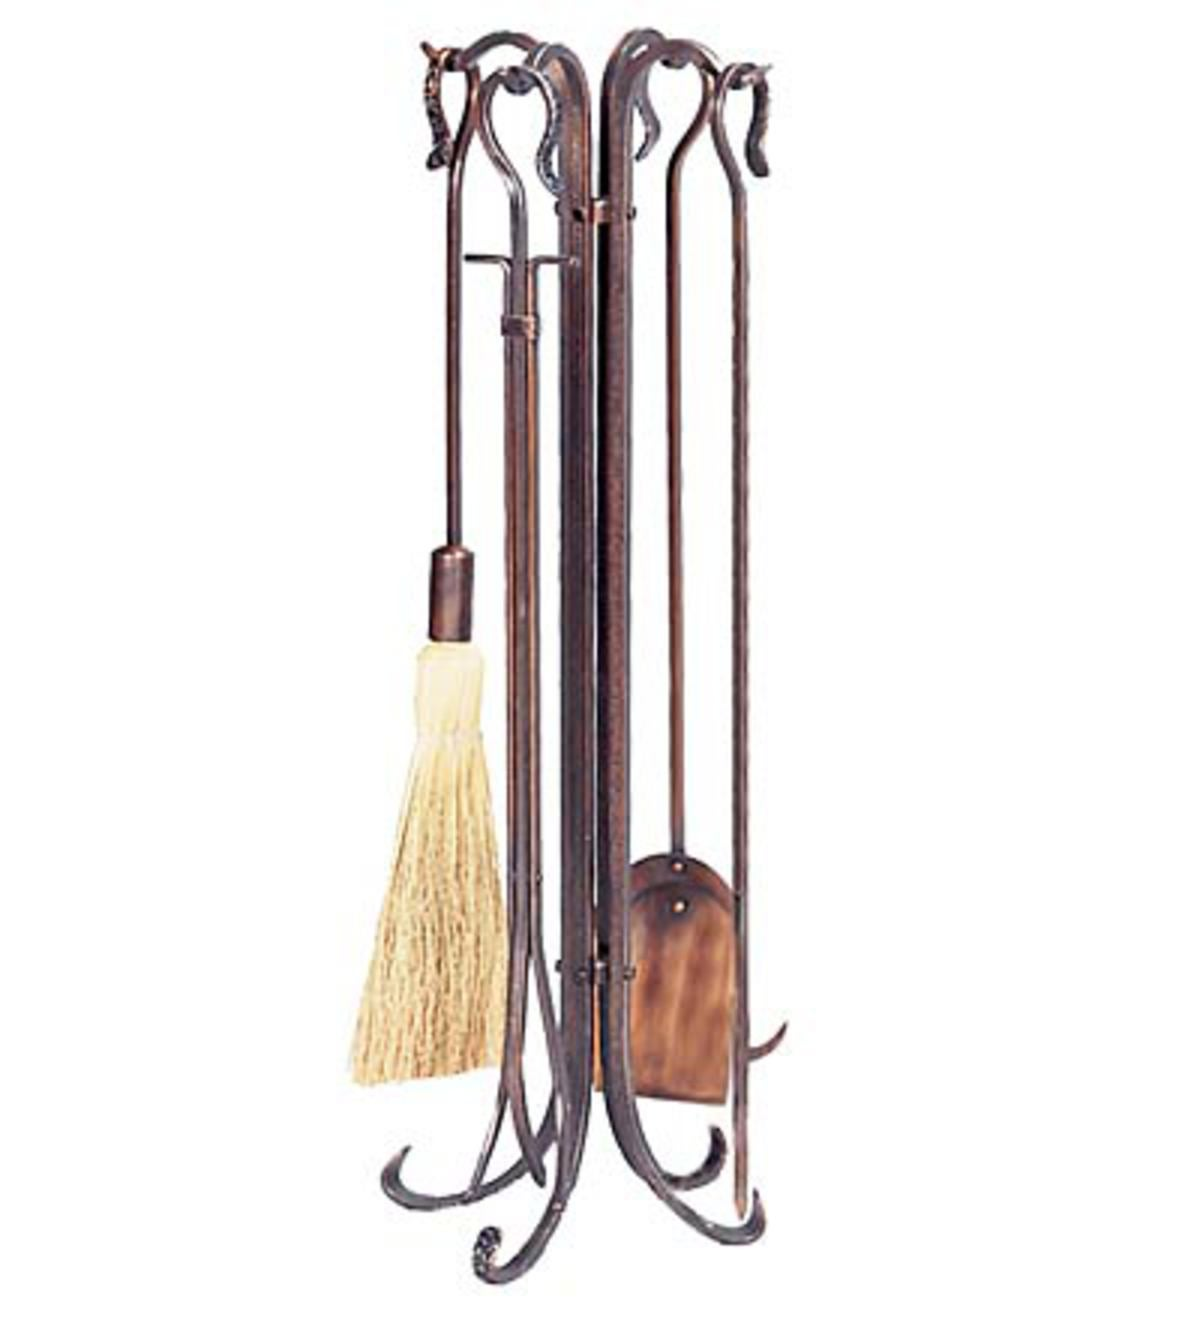 Hammered Crook Fire Tools